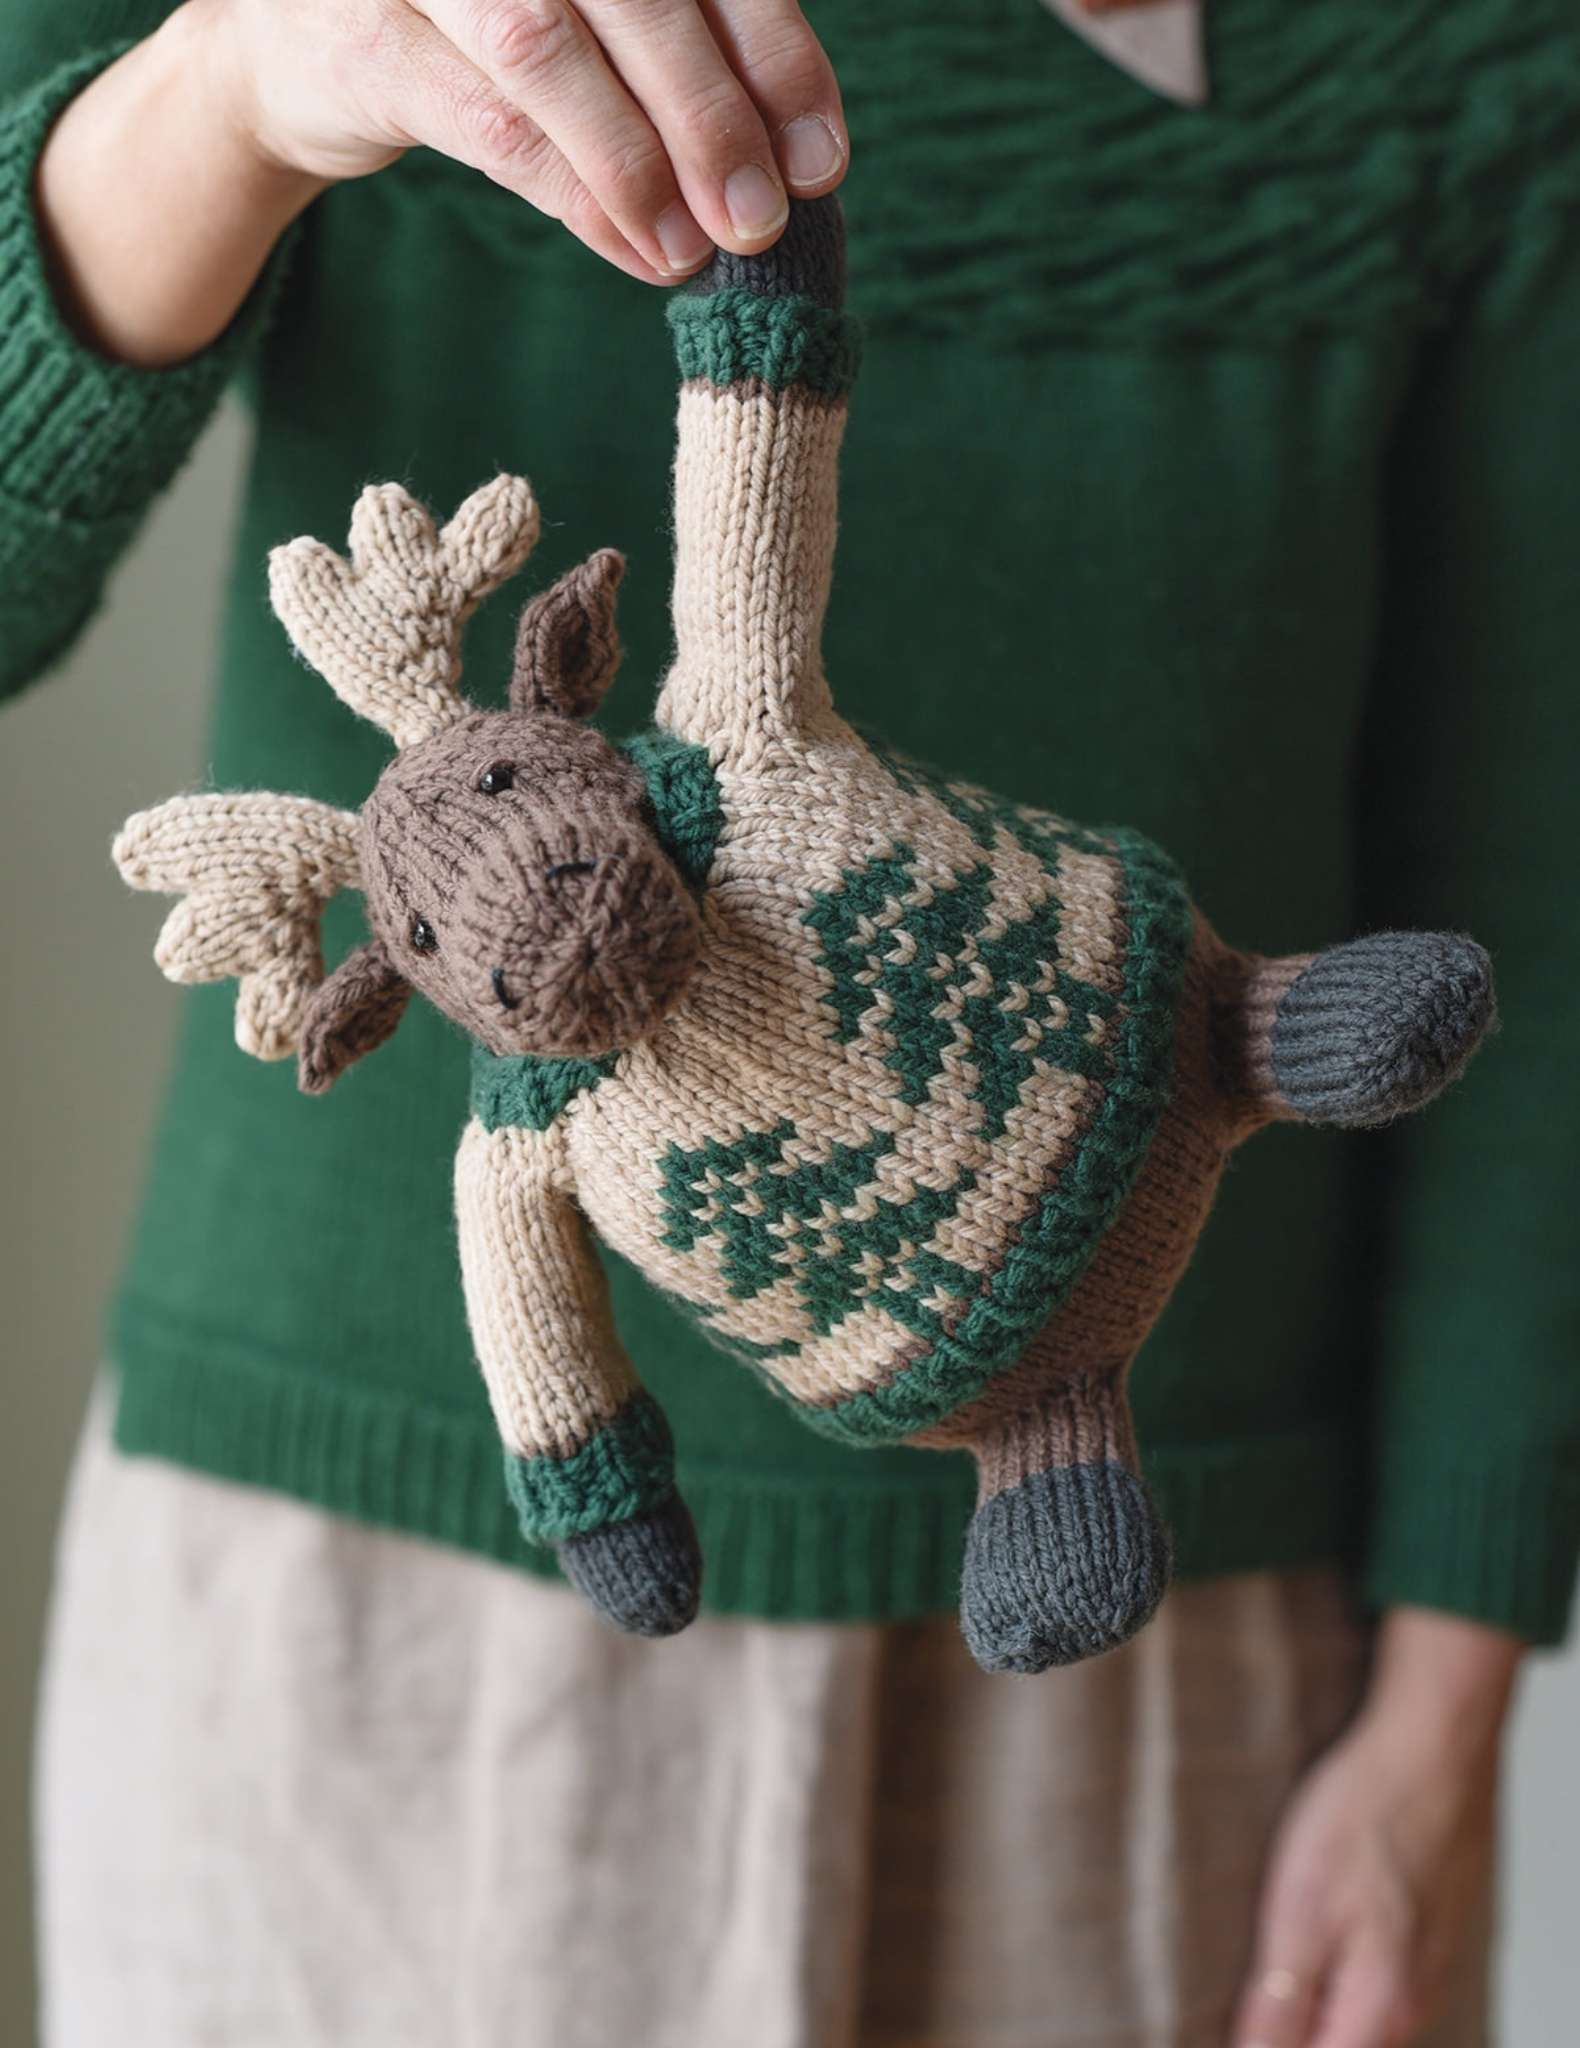 A knitted toy moose is hanging down in front of a model, being held by one arm. The moose wears a colourwork sweater with a tree motif. The model has white hands and is wearing a green sweater.